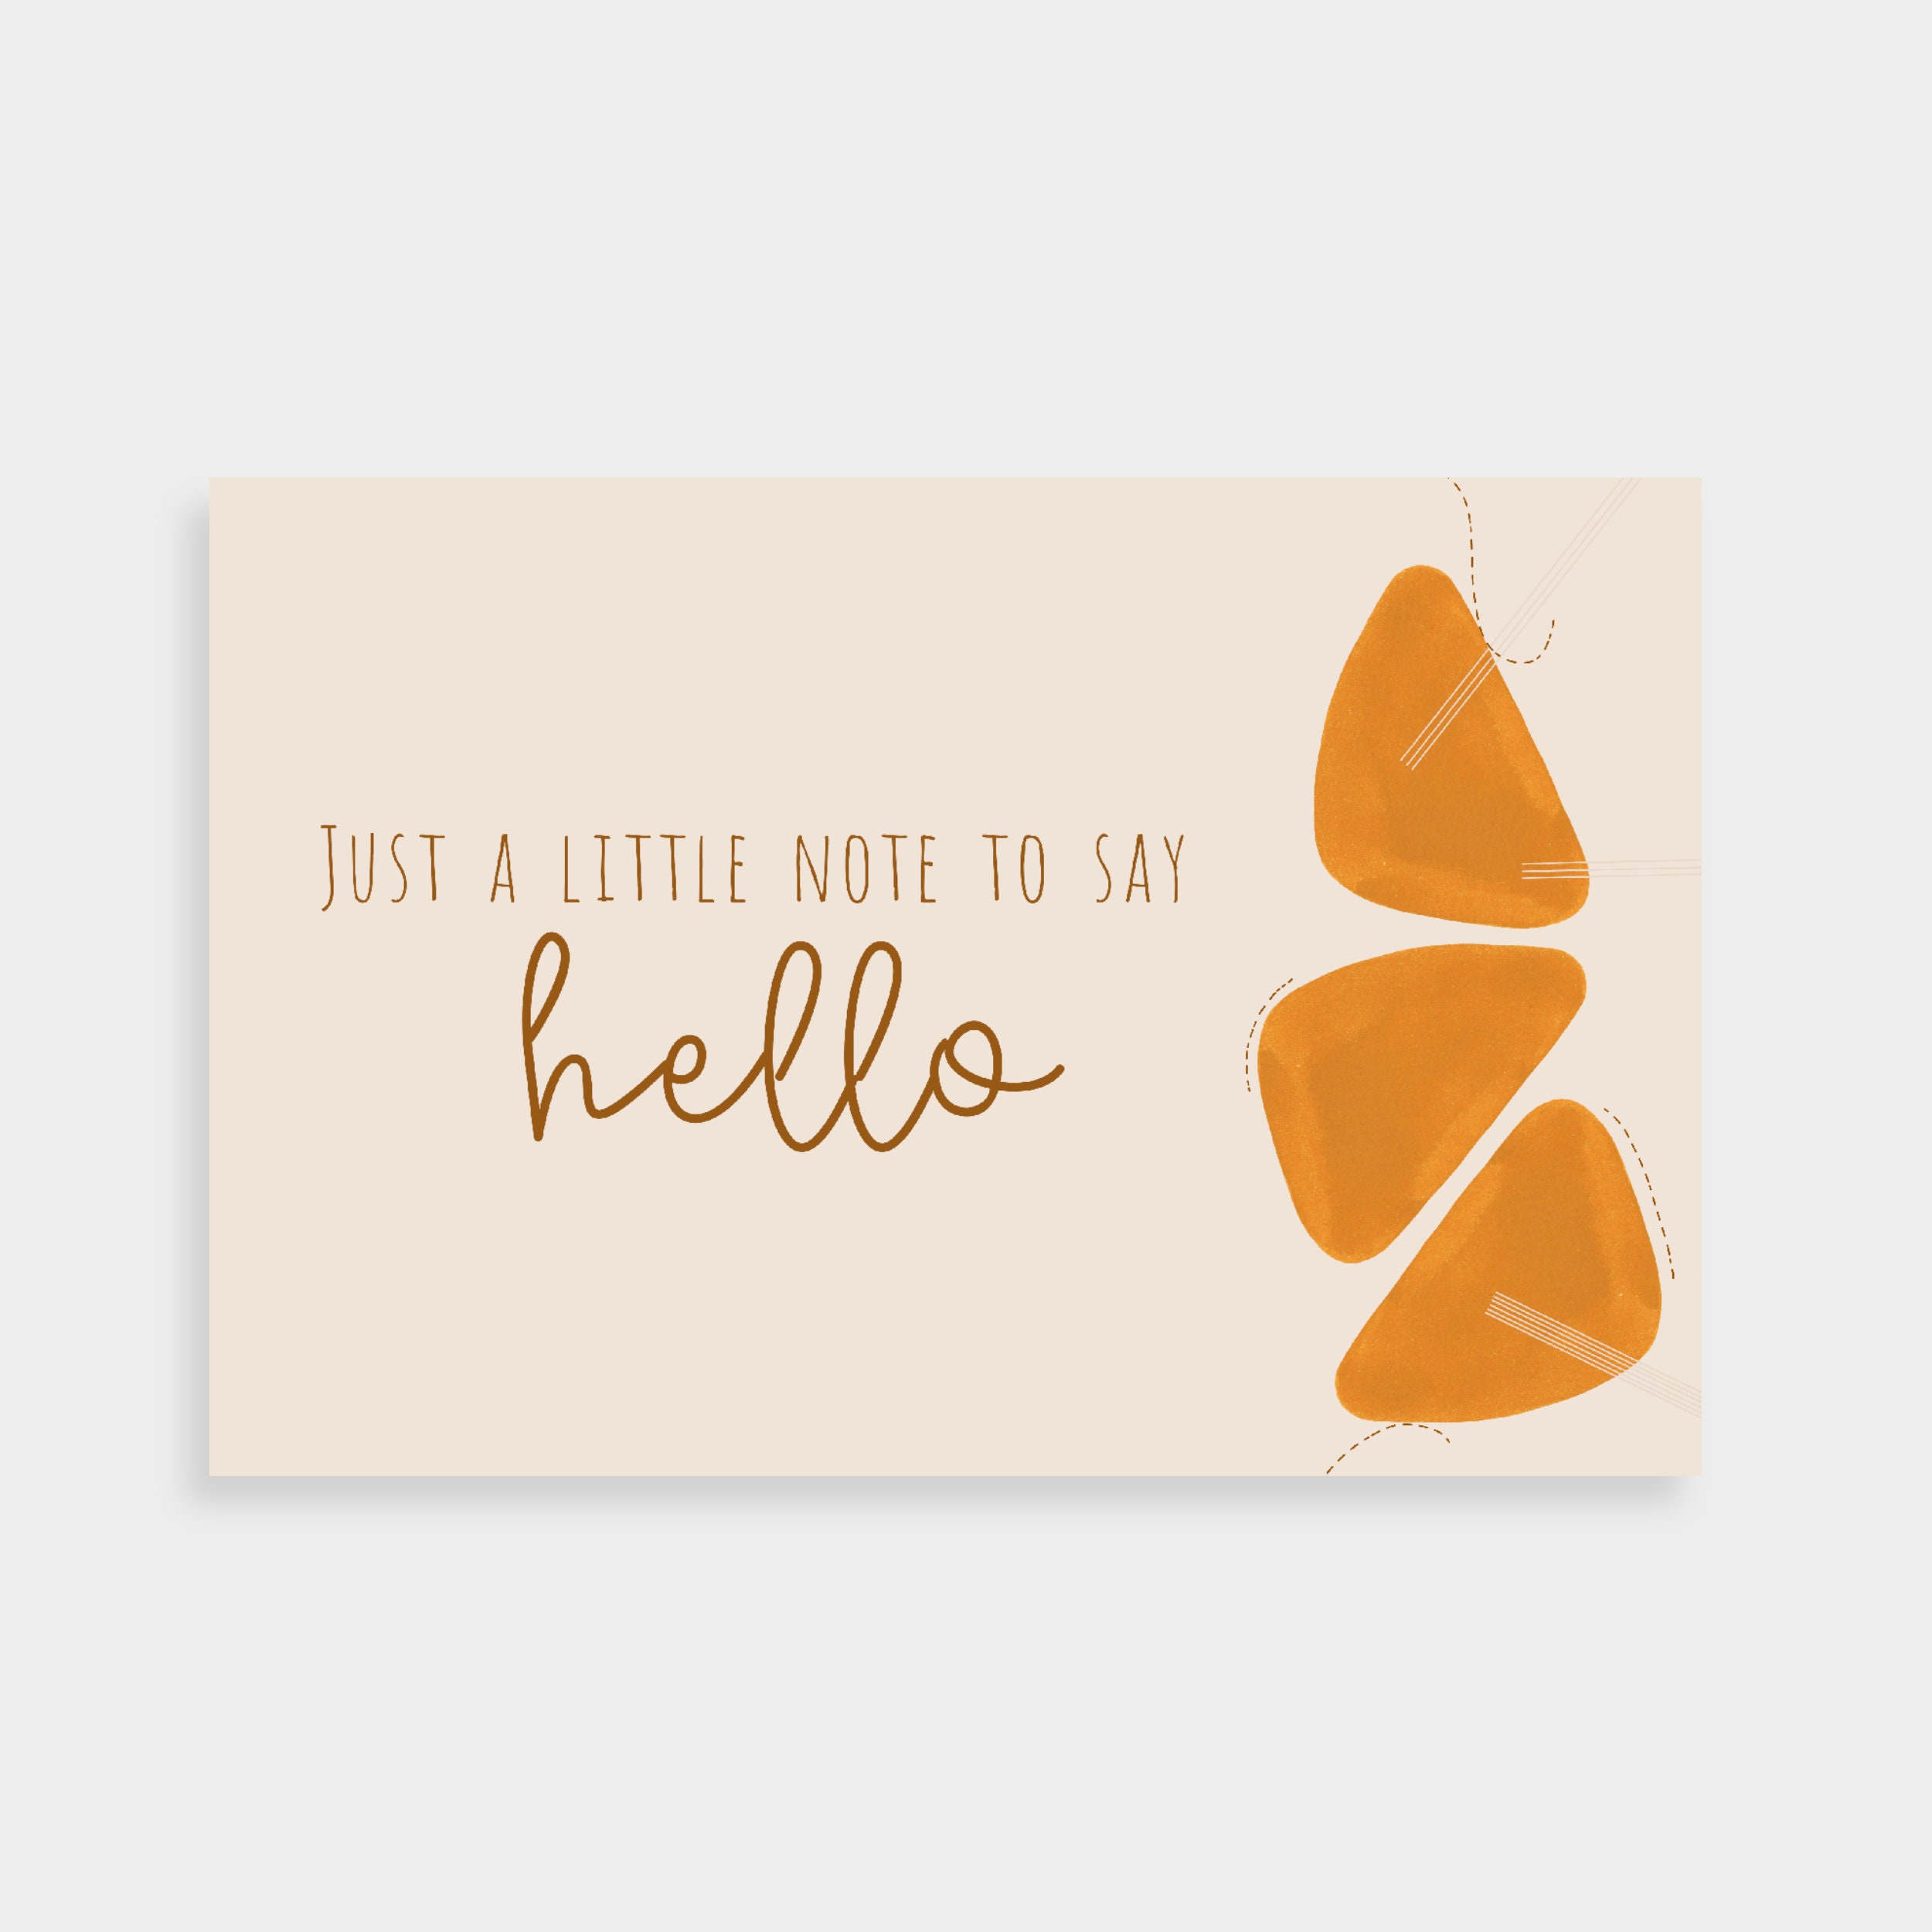 """Cream postcard with a stack of burnt orange shapes and abstract line drawings. Postcard says """"Just a little note to say hello""""."""